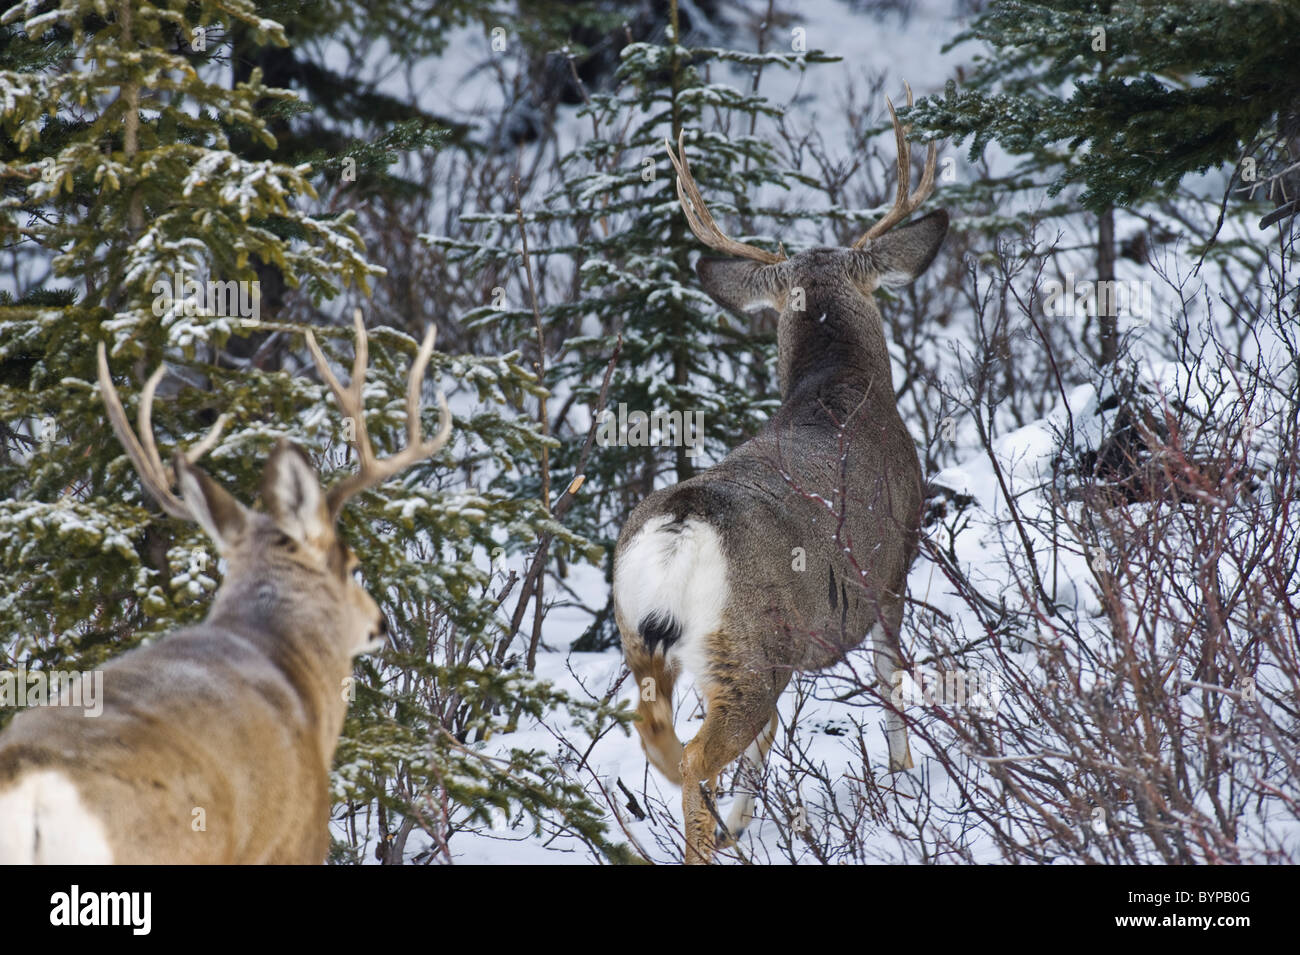 A rear view of two adult mule deer bucks walking away through the brush and snow. - Stock Image